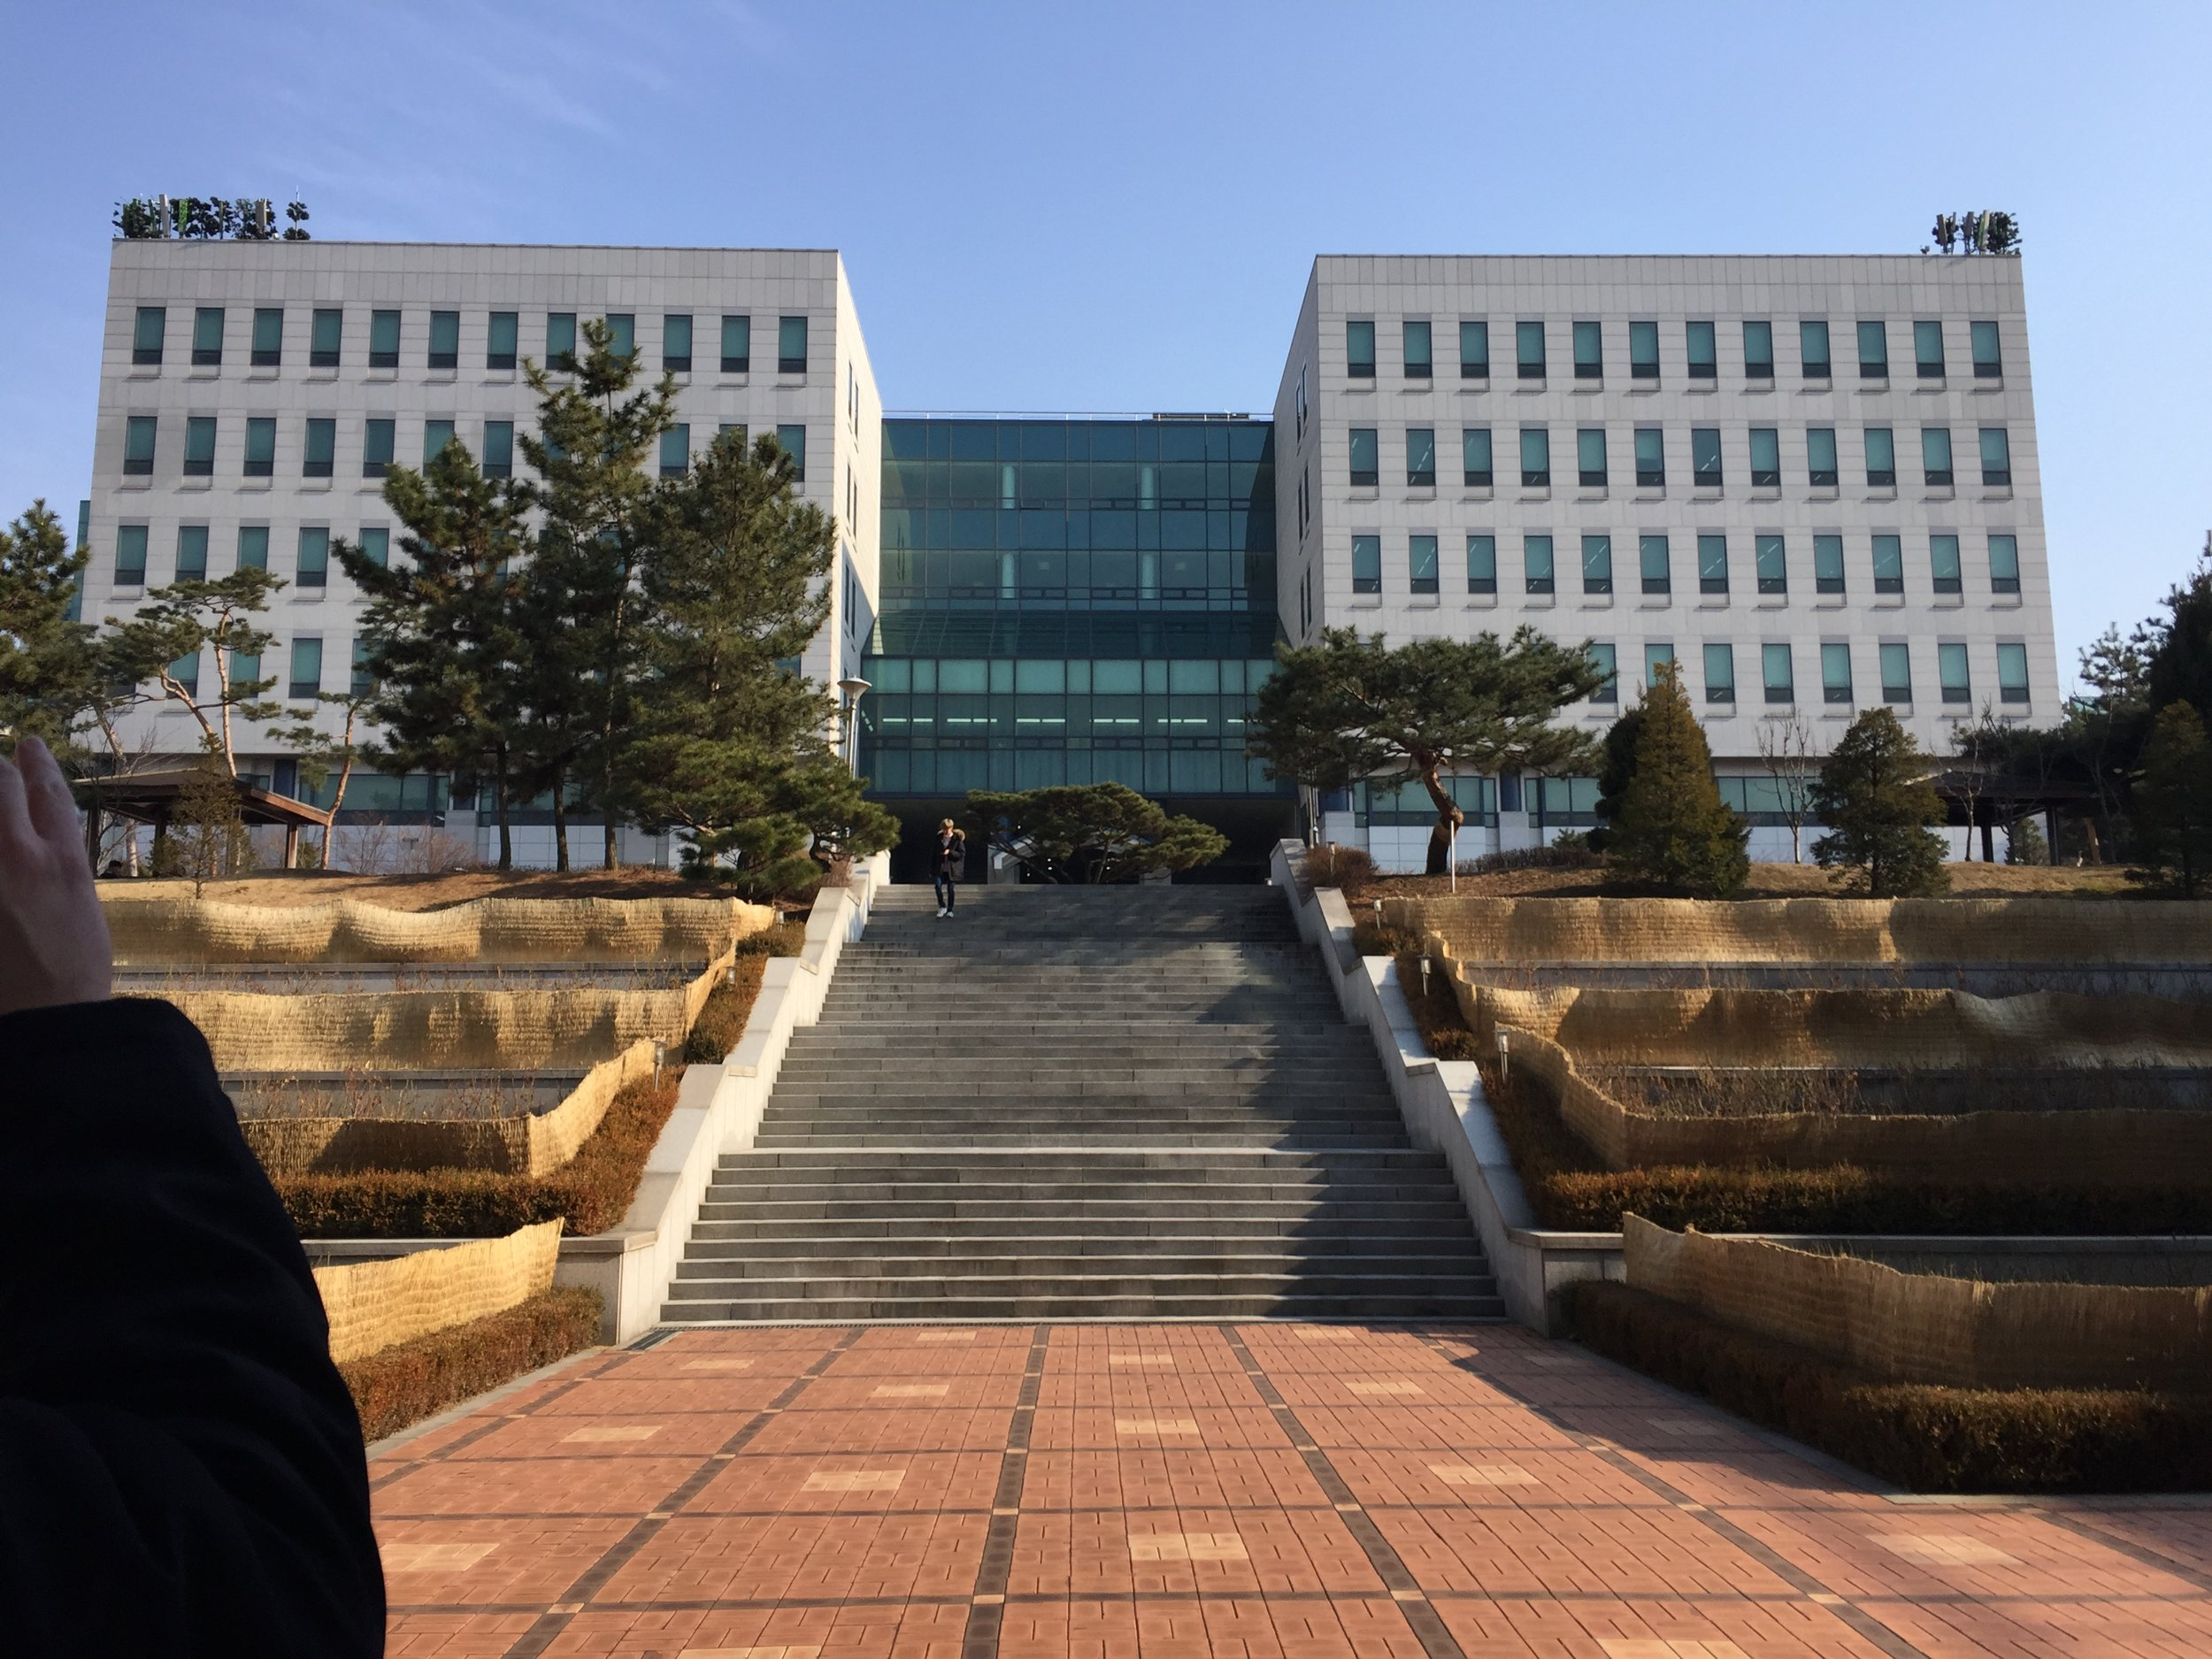 The view from the front of Dankook University